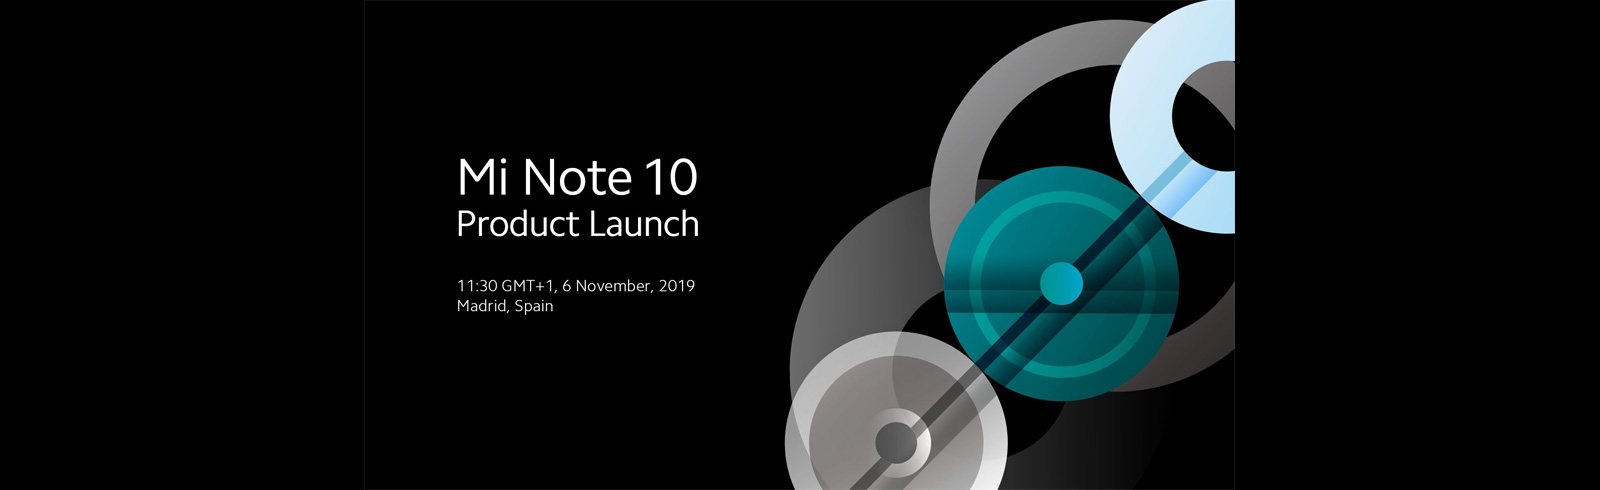 Xiaomi draws the Mi Note 10 launch date earlier than expected